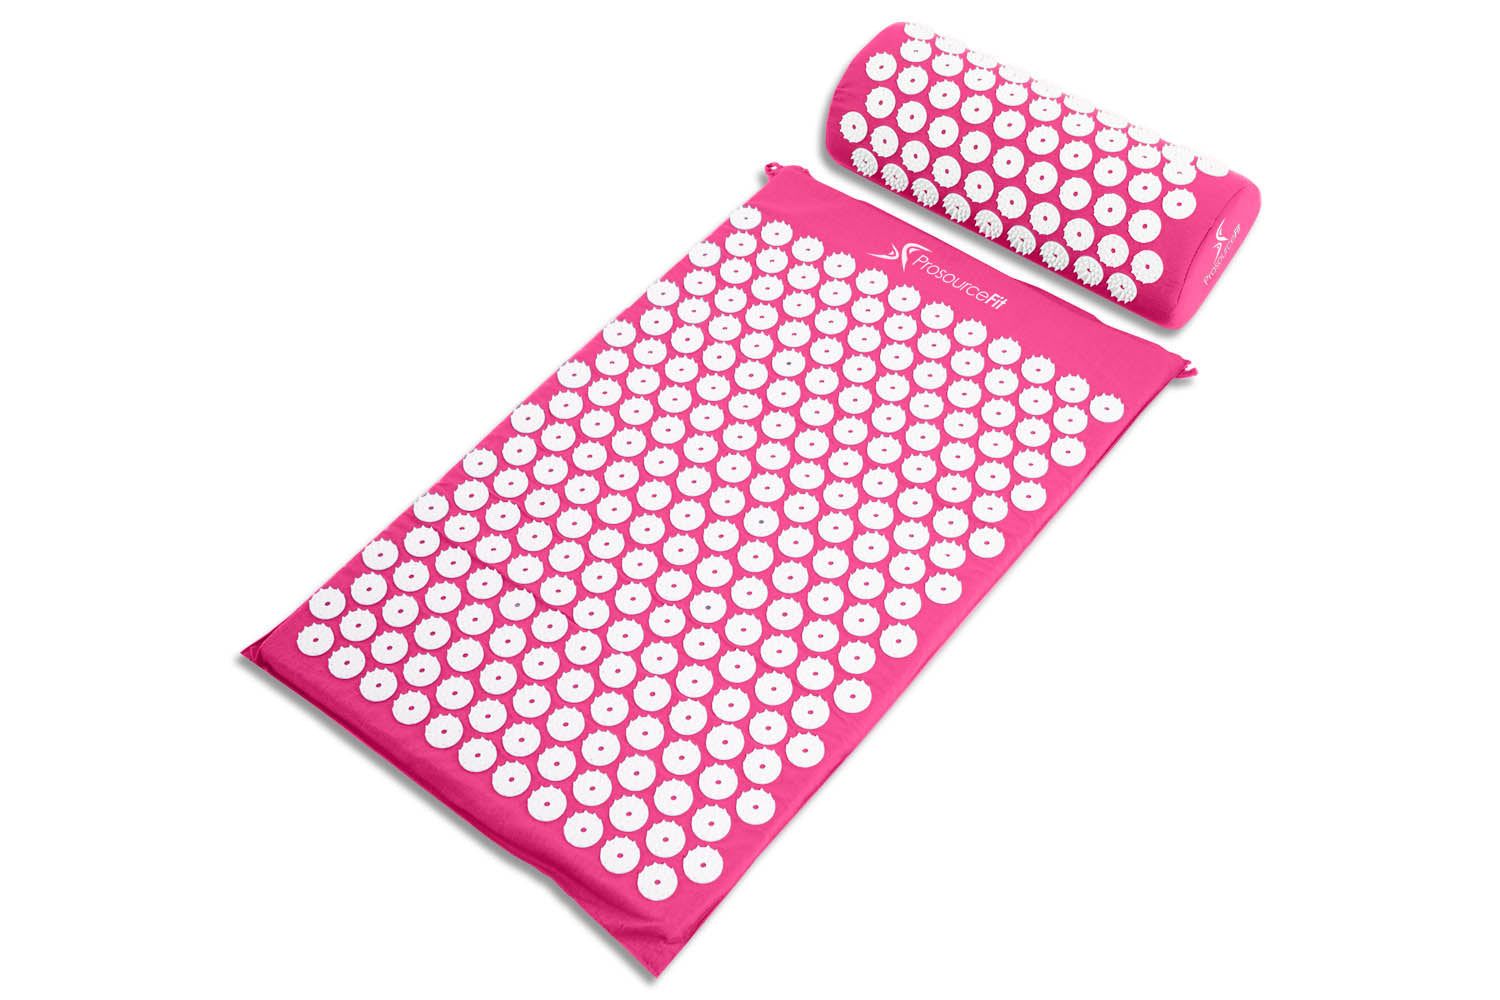 Acupressure Mat And Pillow Set Prosourcefit